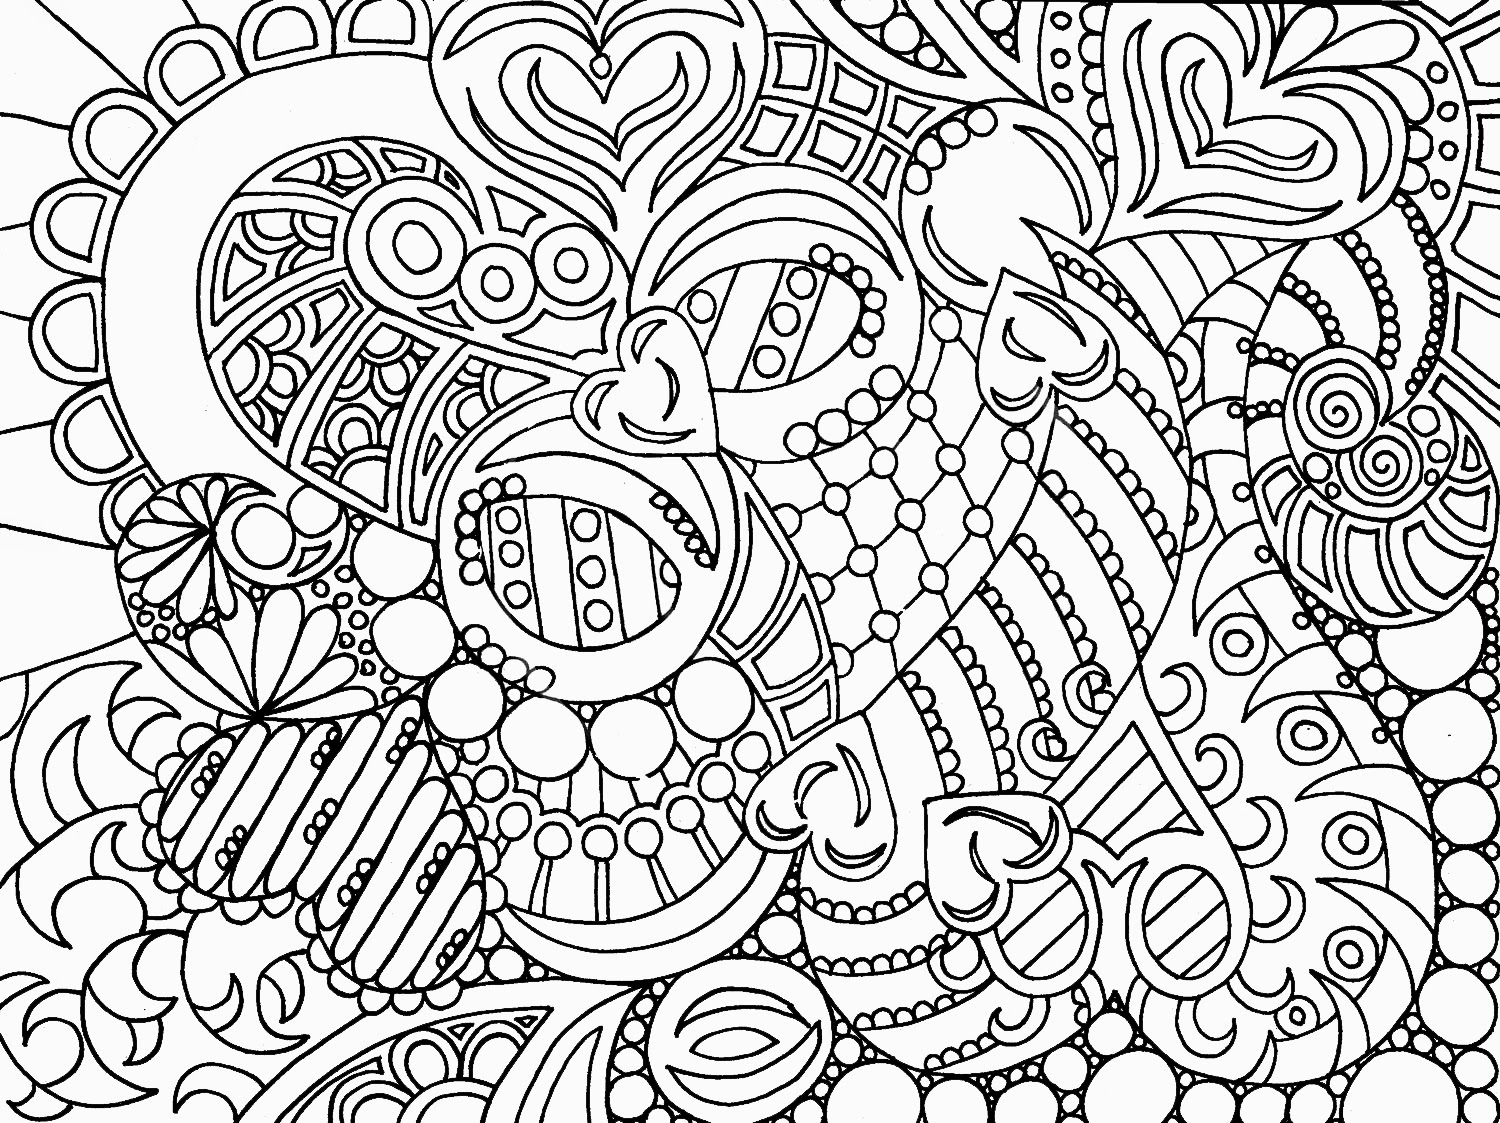 1500x1123 art coloring pages colori best free abstract coloring pages